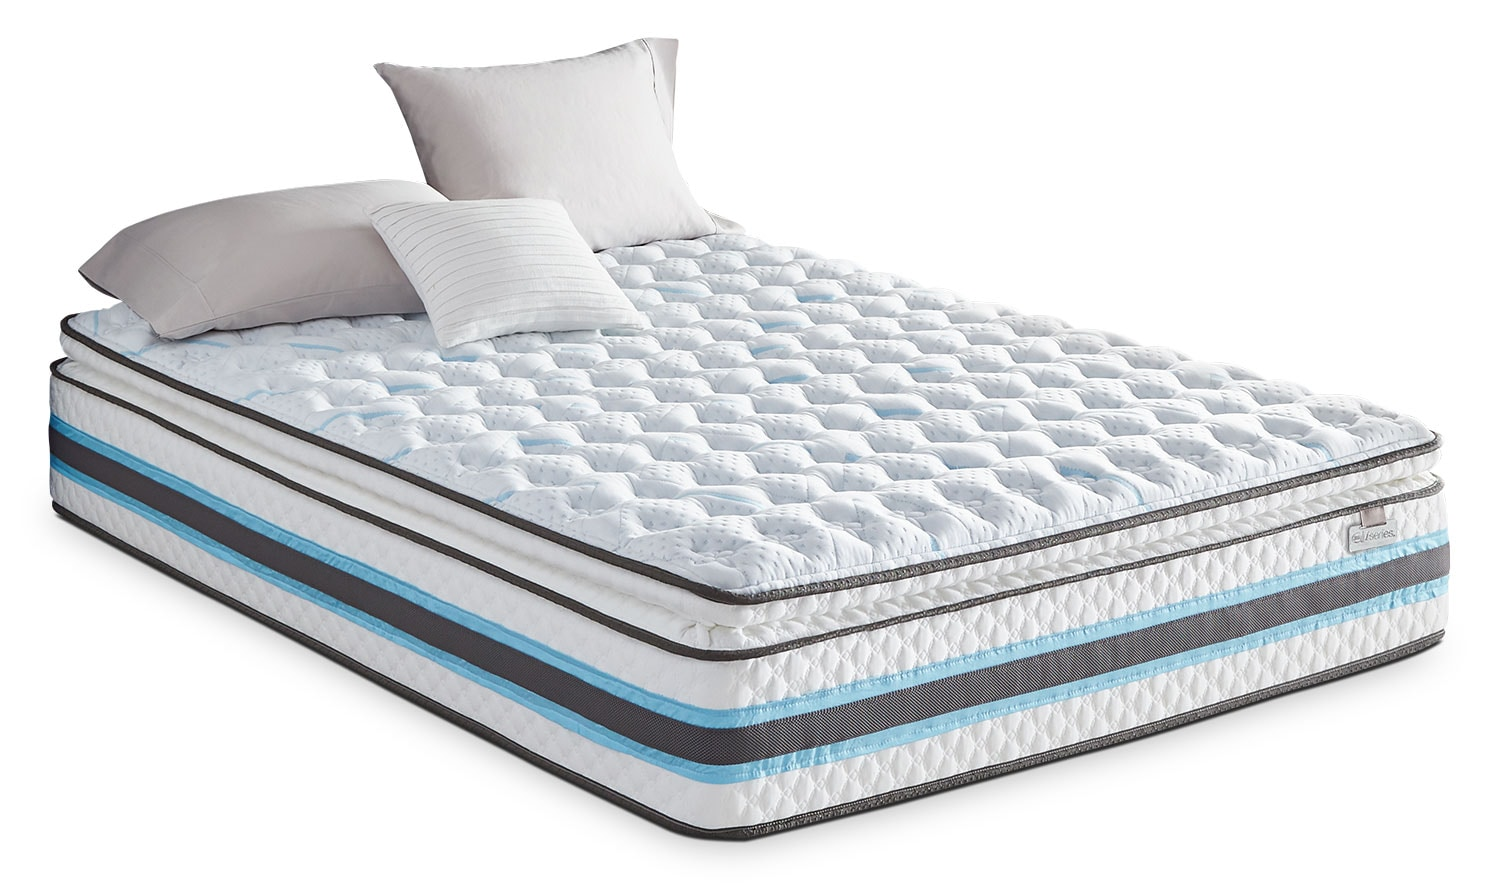 Mattresses and Bedding - Serta iSeries® Breathtaking Pillow-Top Plush King Mattress